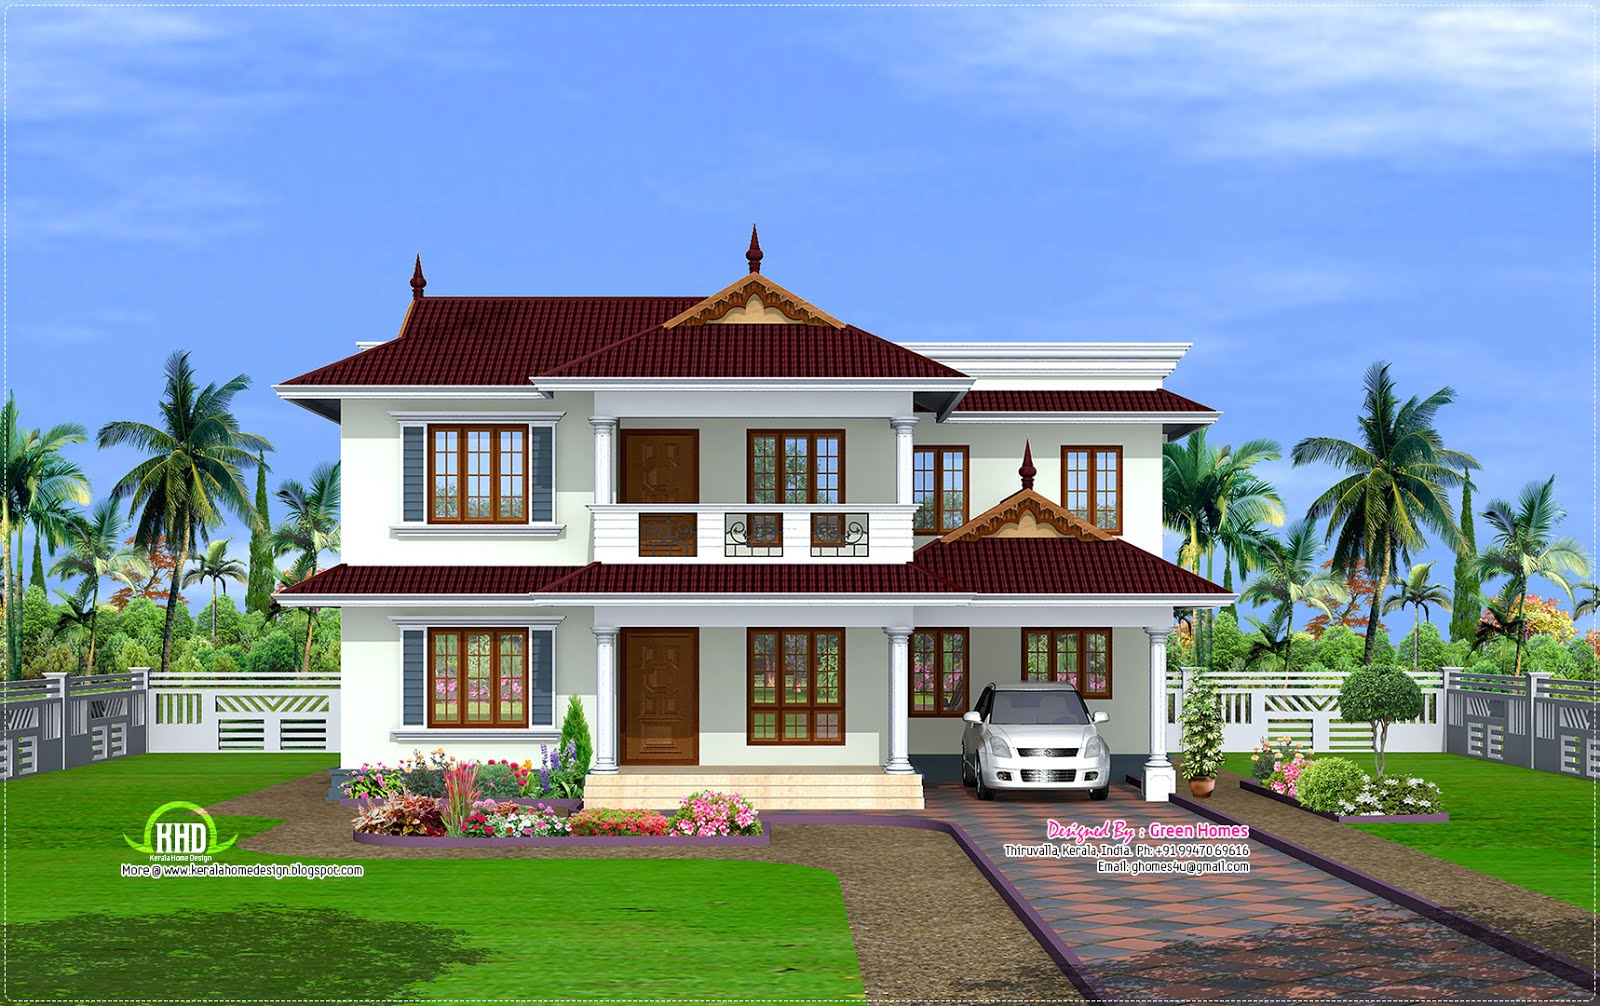 2600 kerala model house house design plans. Black Bedroom Furniture Sets. Home Design Ideas